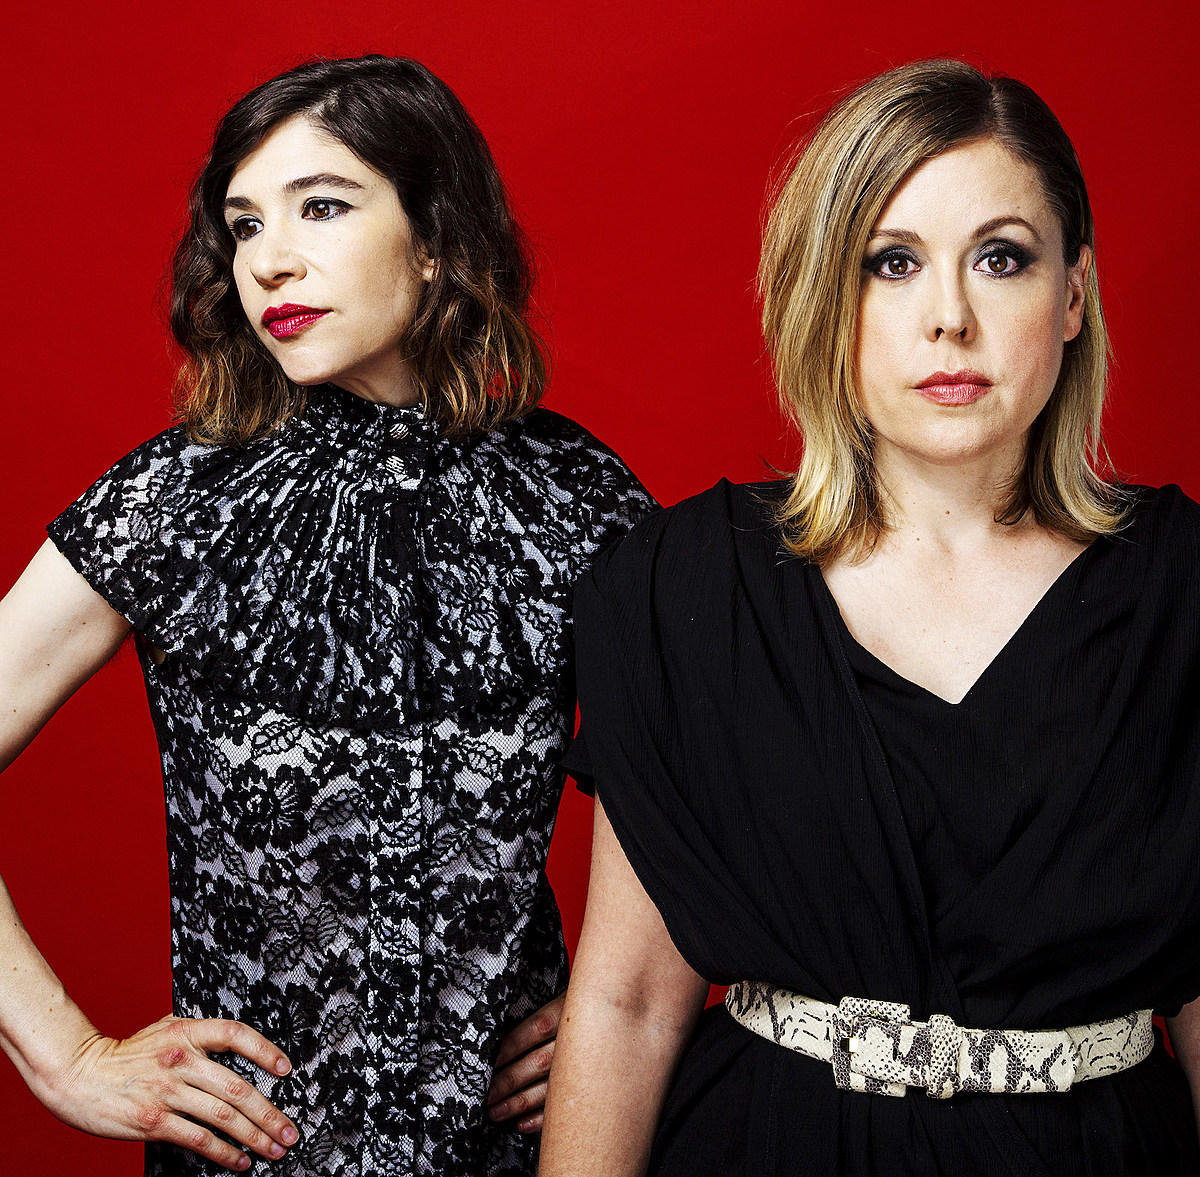 tours announced: Shamir/Sleater-Kinney, Bitchin Bajas/Stereolab, Bob Seger, more